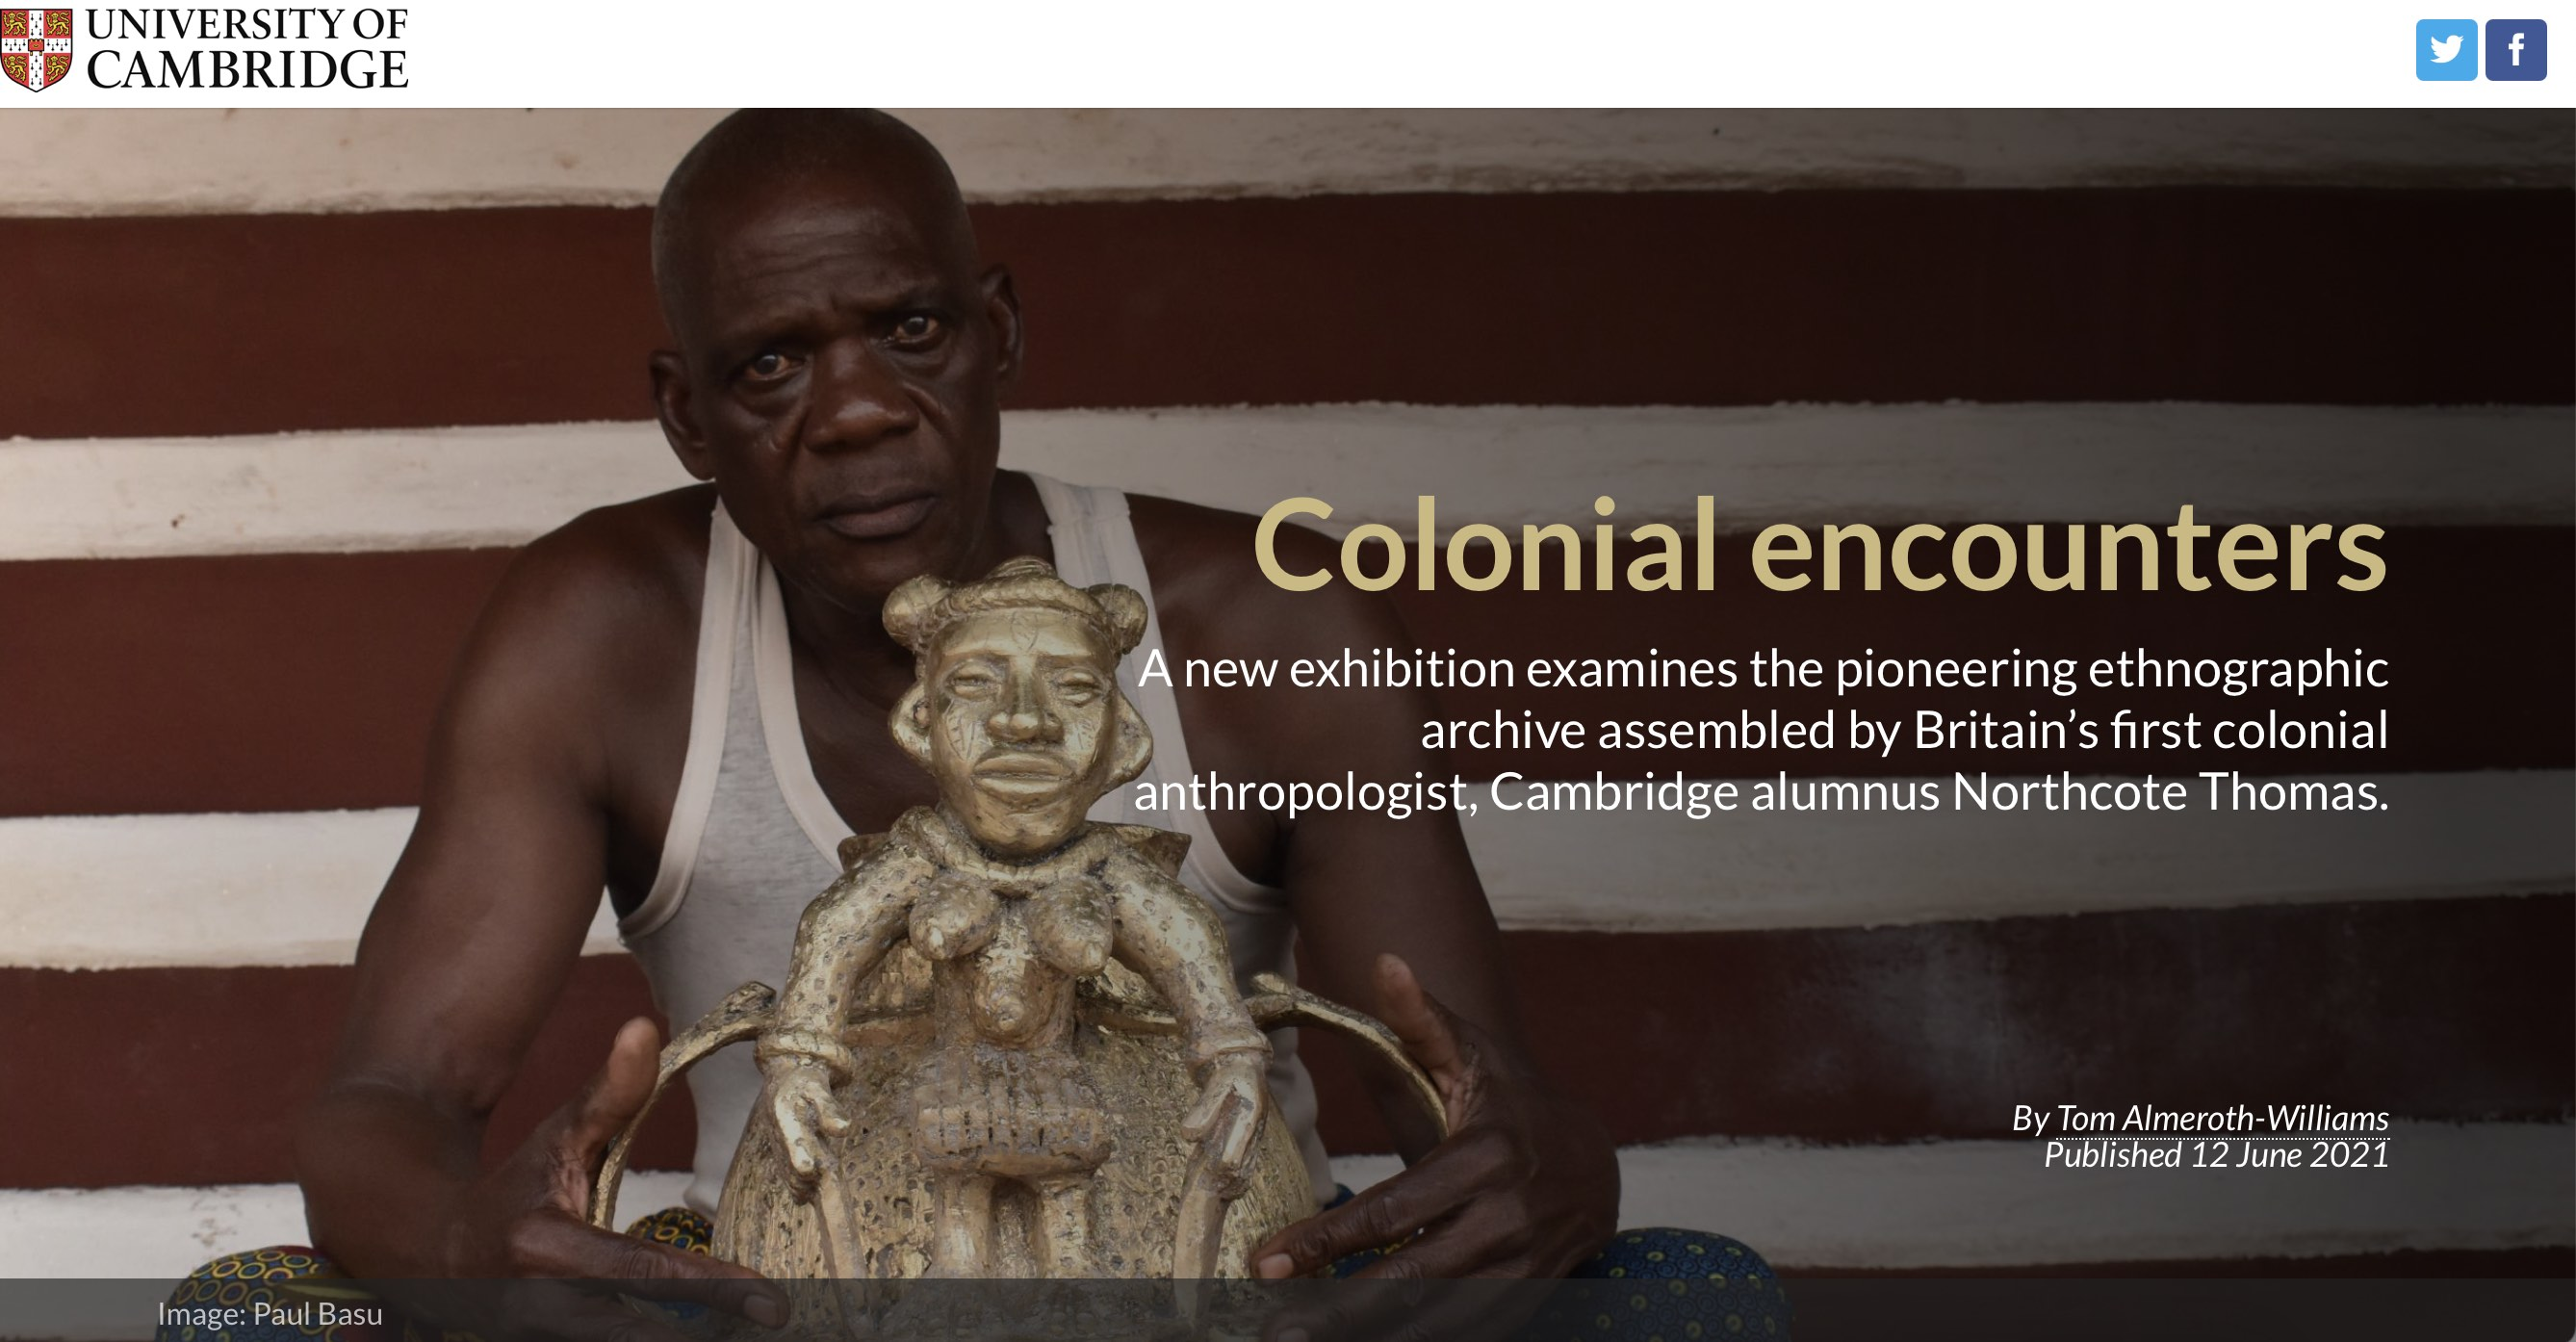 Screenshot of online article by University of Cambridge. Colonial Encounters, by Tom Almeroth-Williams, 12 June 2021.